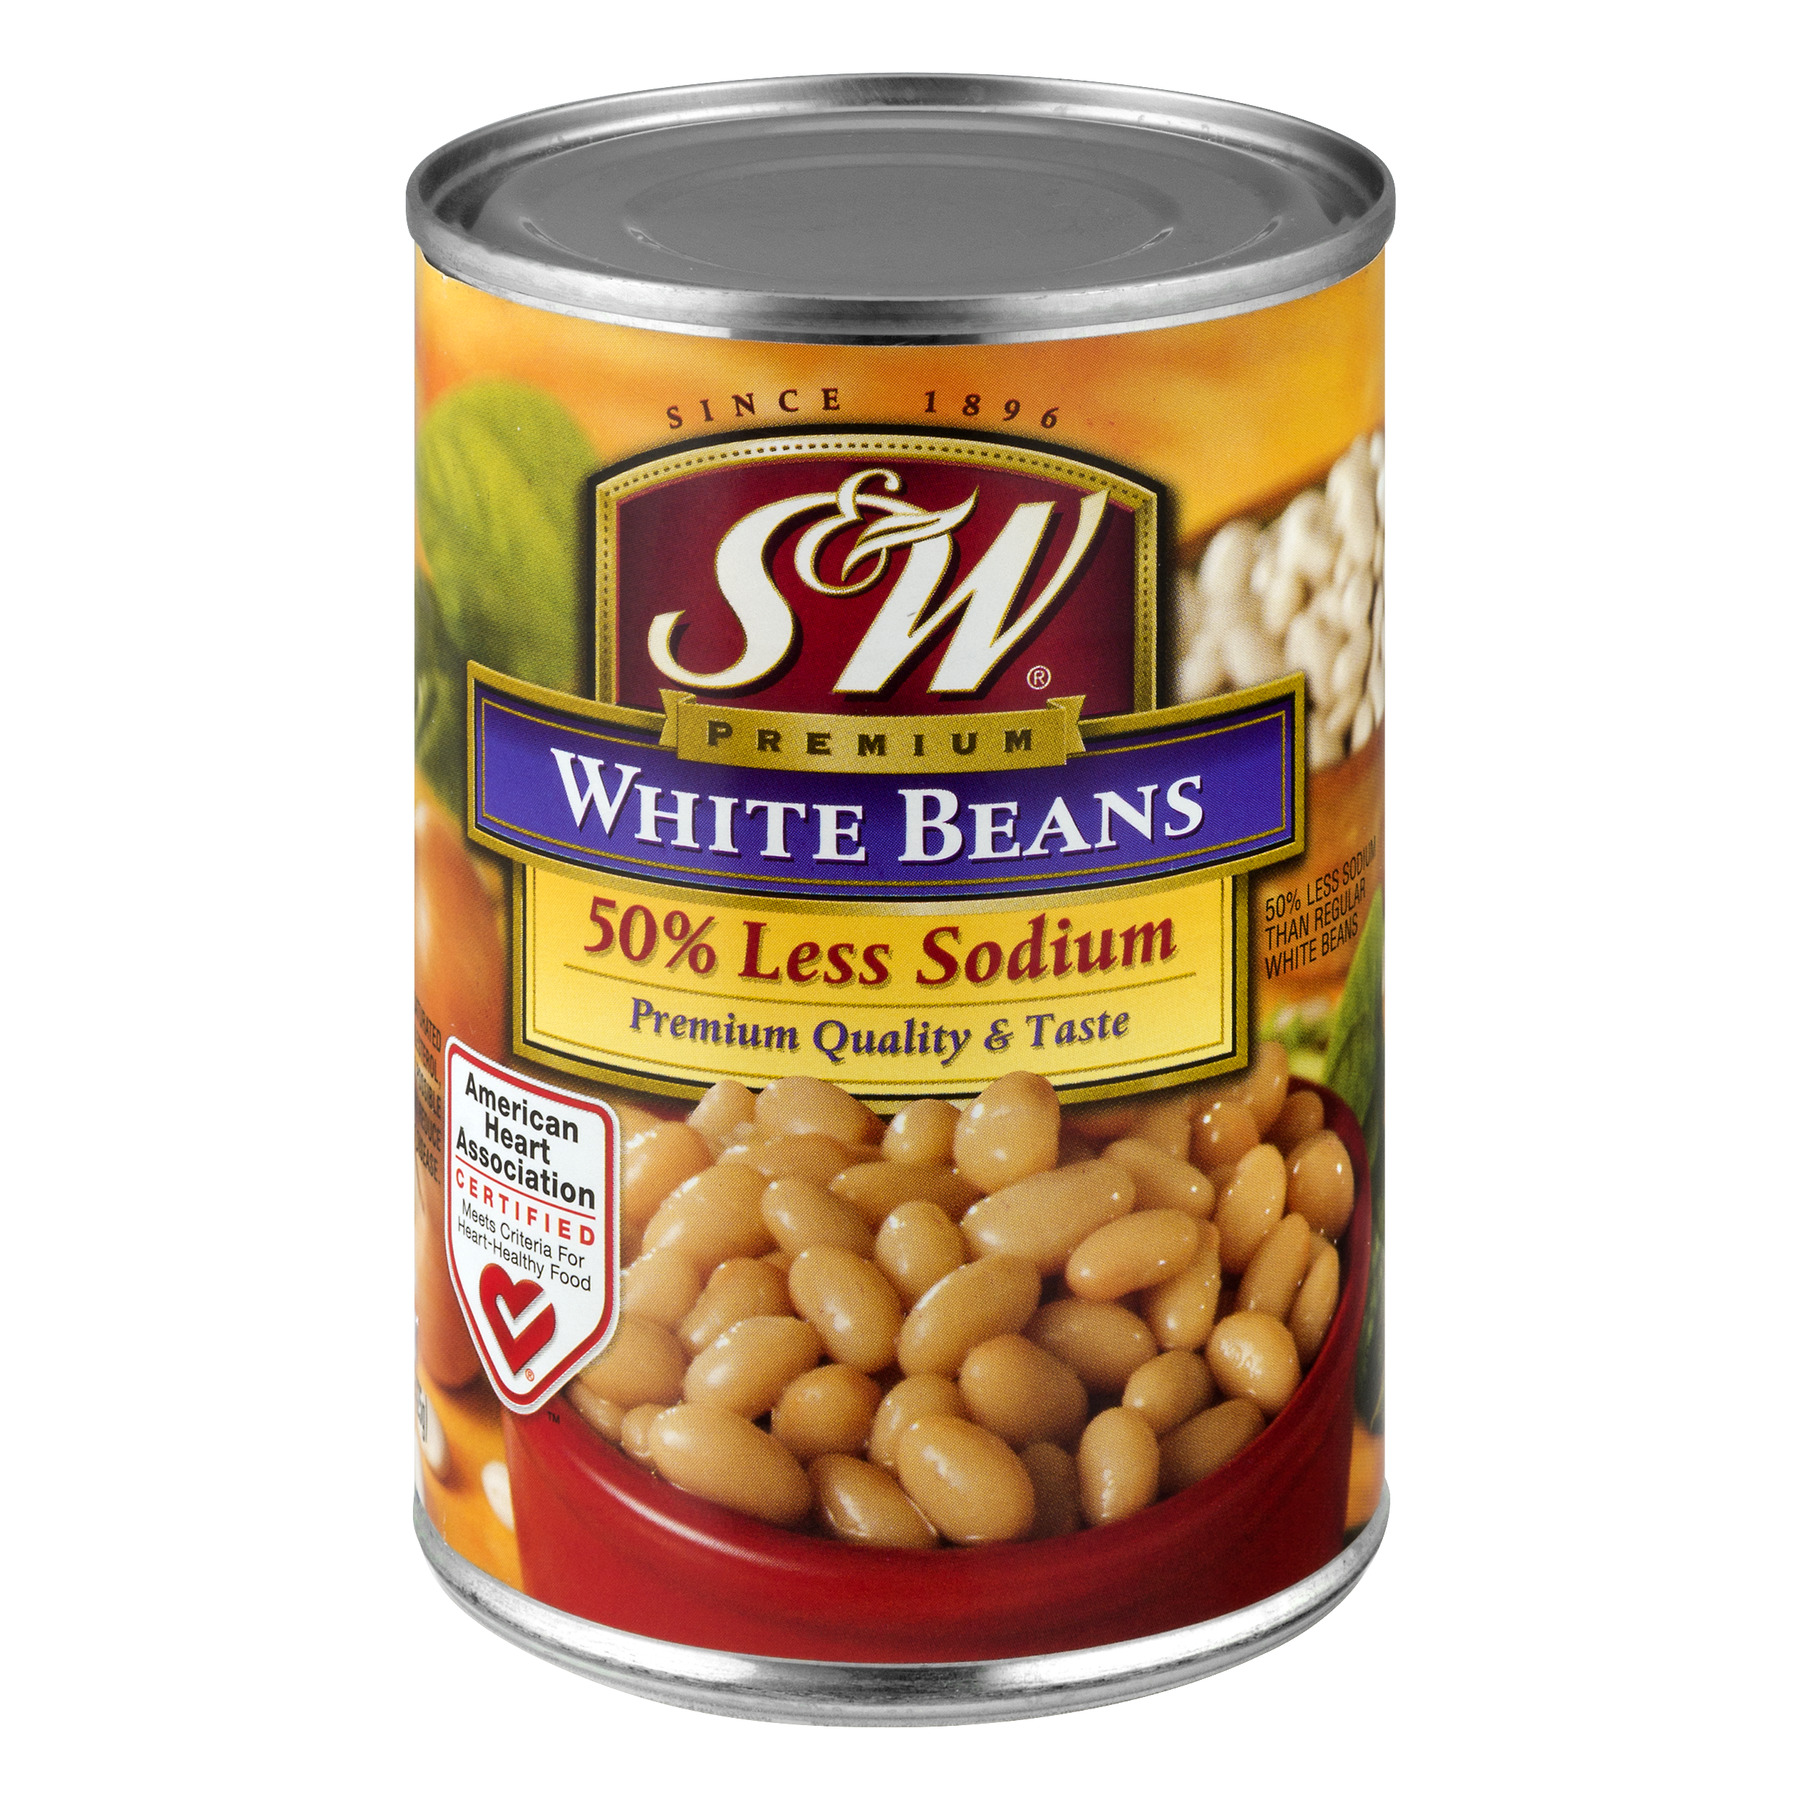 S&W® 50% Less Sodium White Beans 15 oz. Can